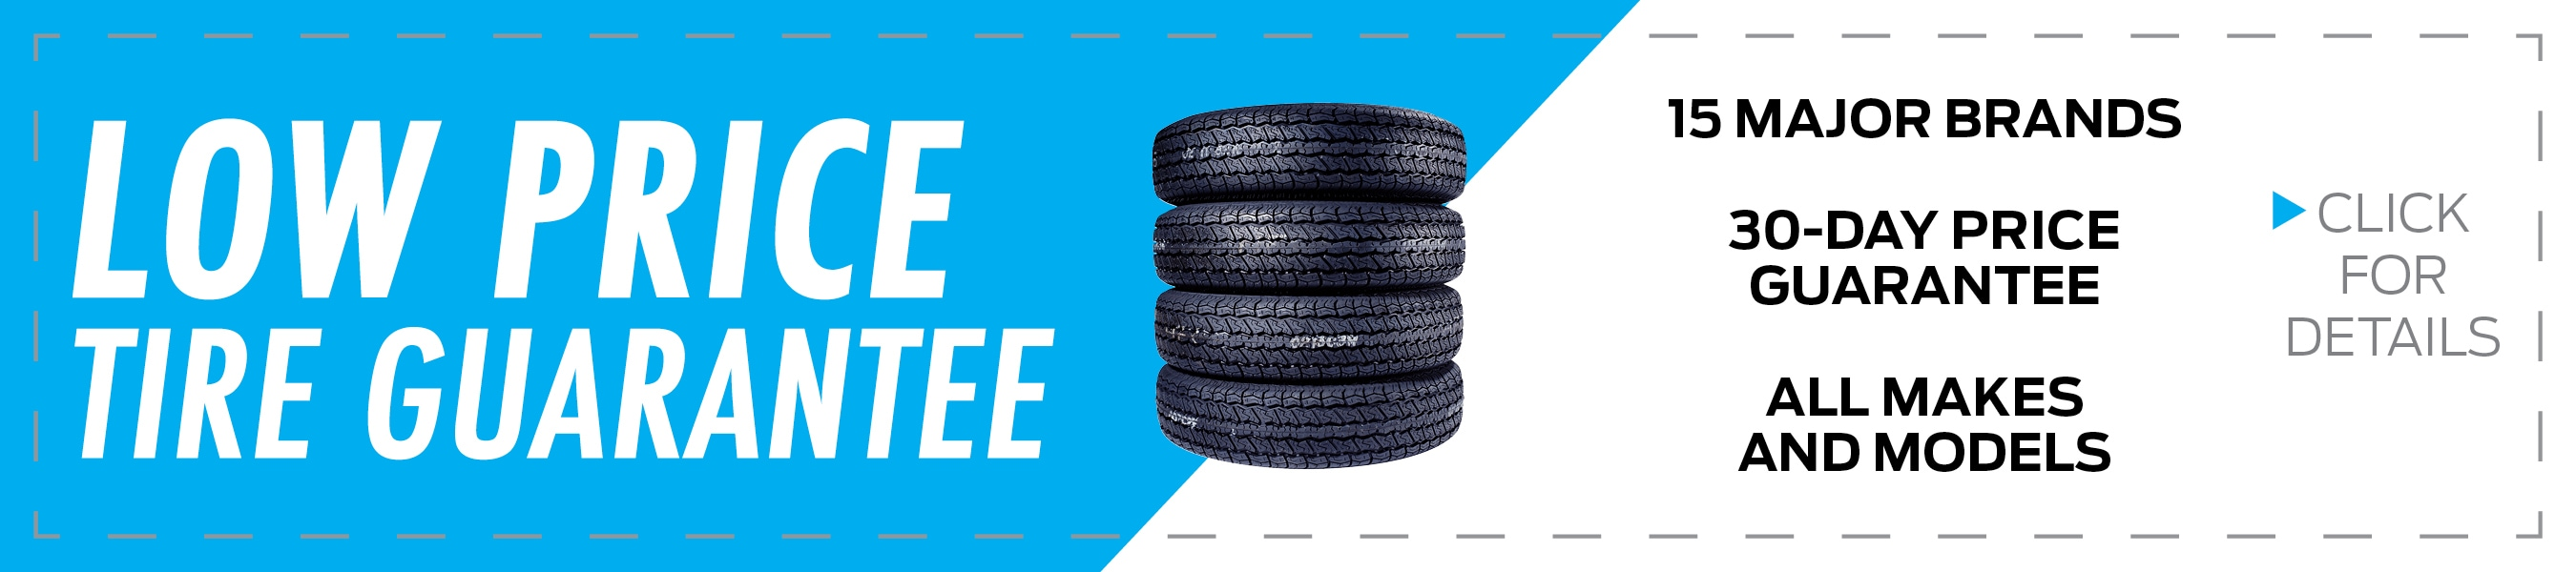 Low Price Tire Guarantee Coupon, Duluth